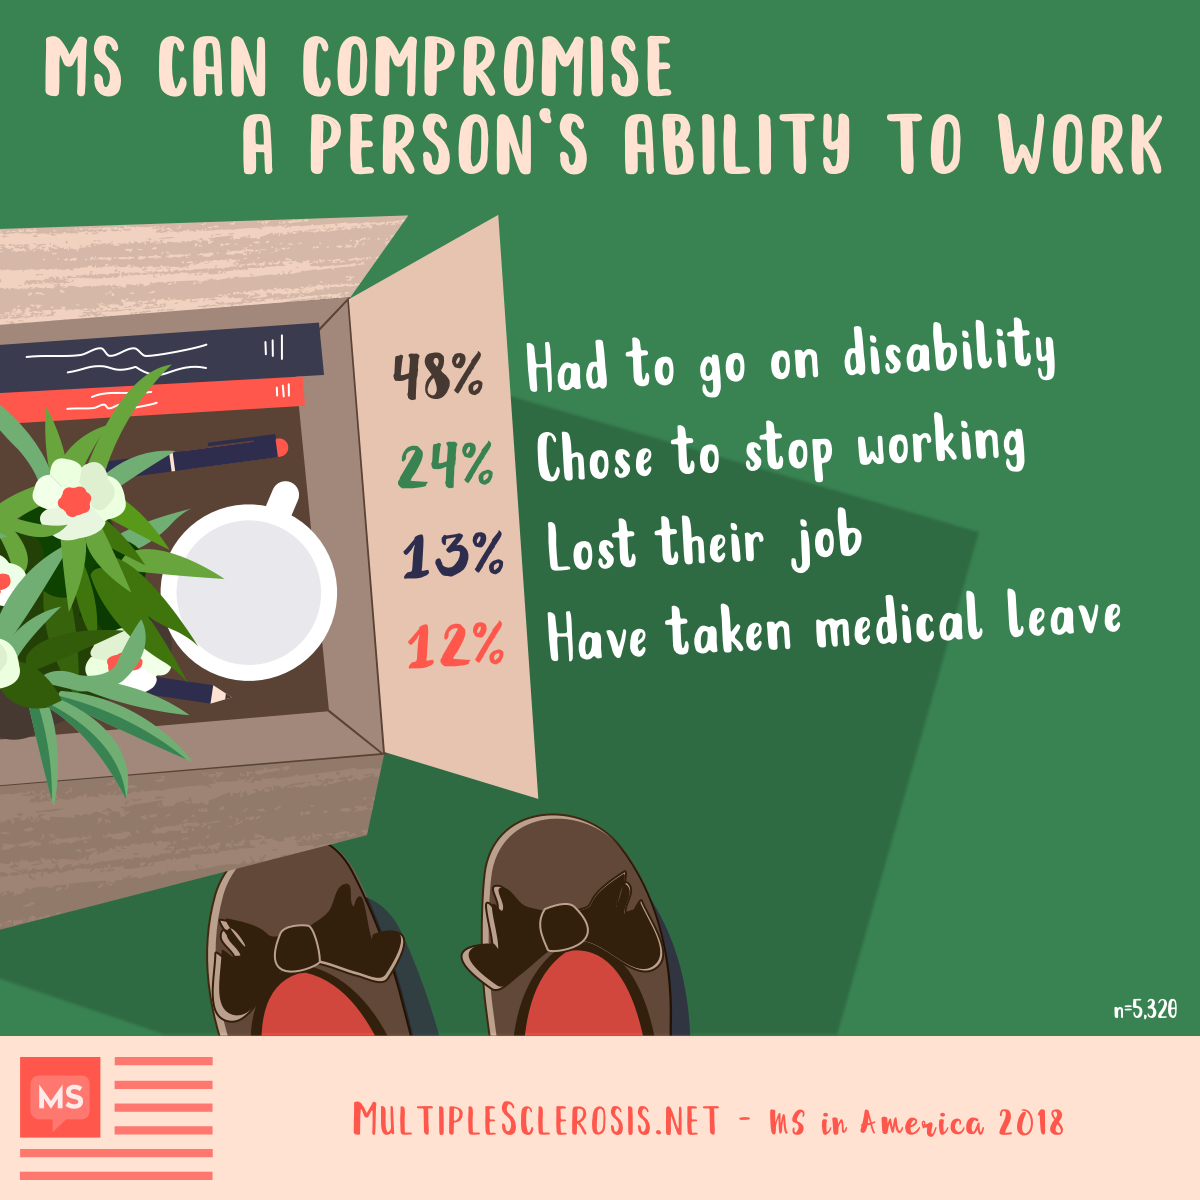 MS can compromise a person's ability to work. 48% had to go on disability, 24% chose to stop working, 13% lost their job at some point, 12% have taken a medical leave from work at some point